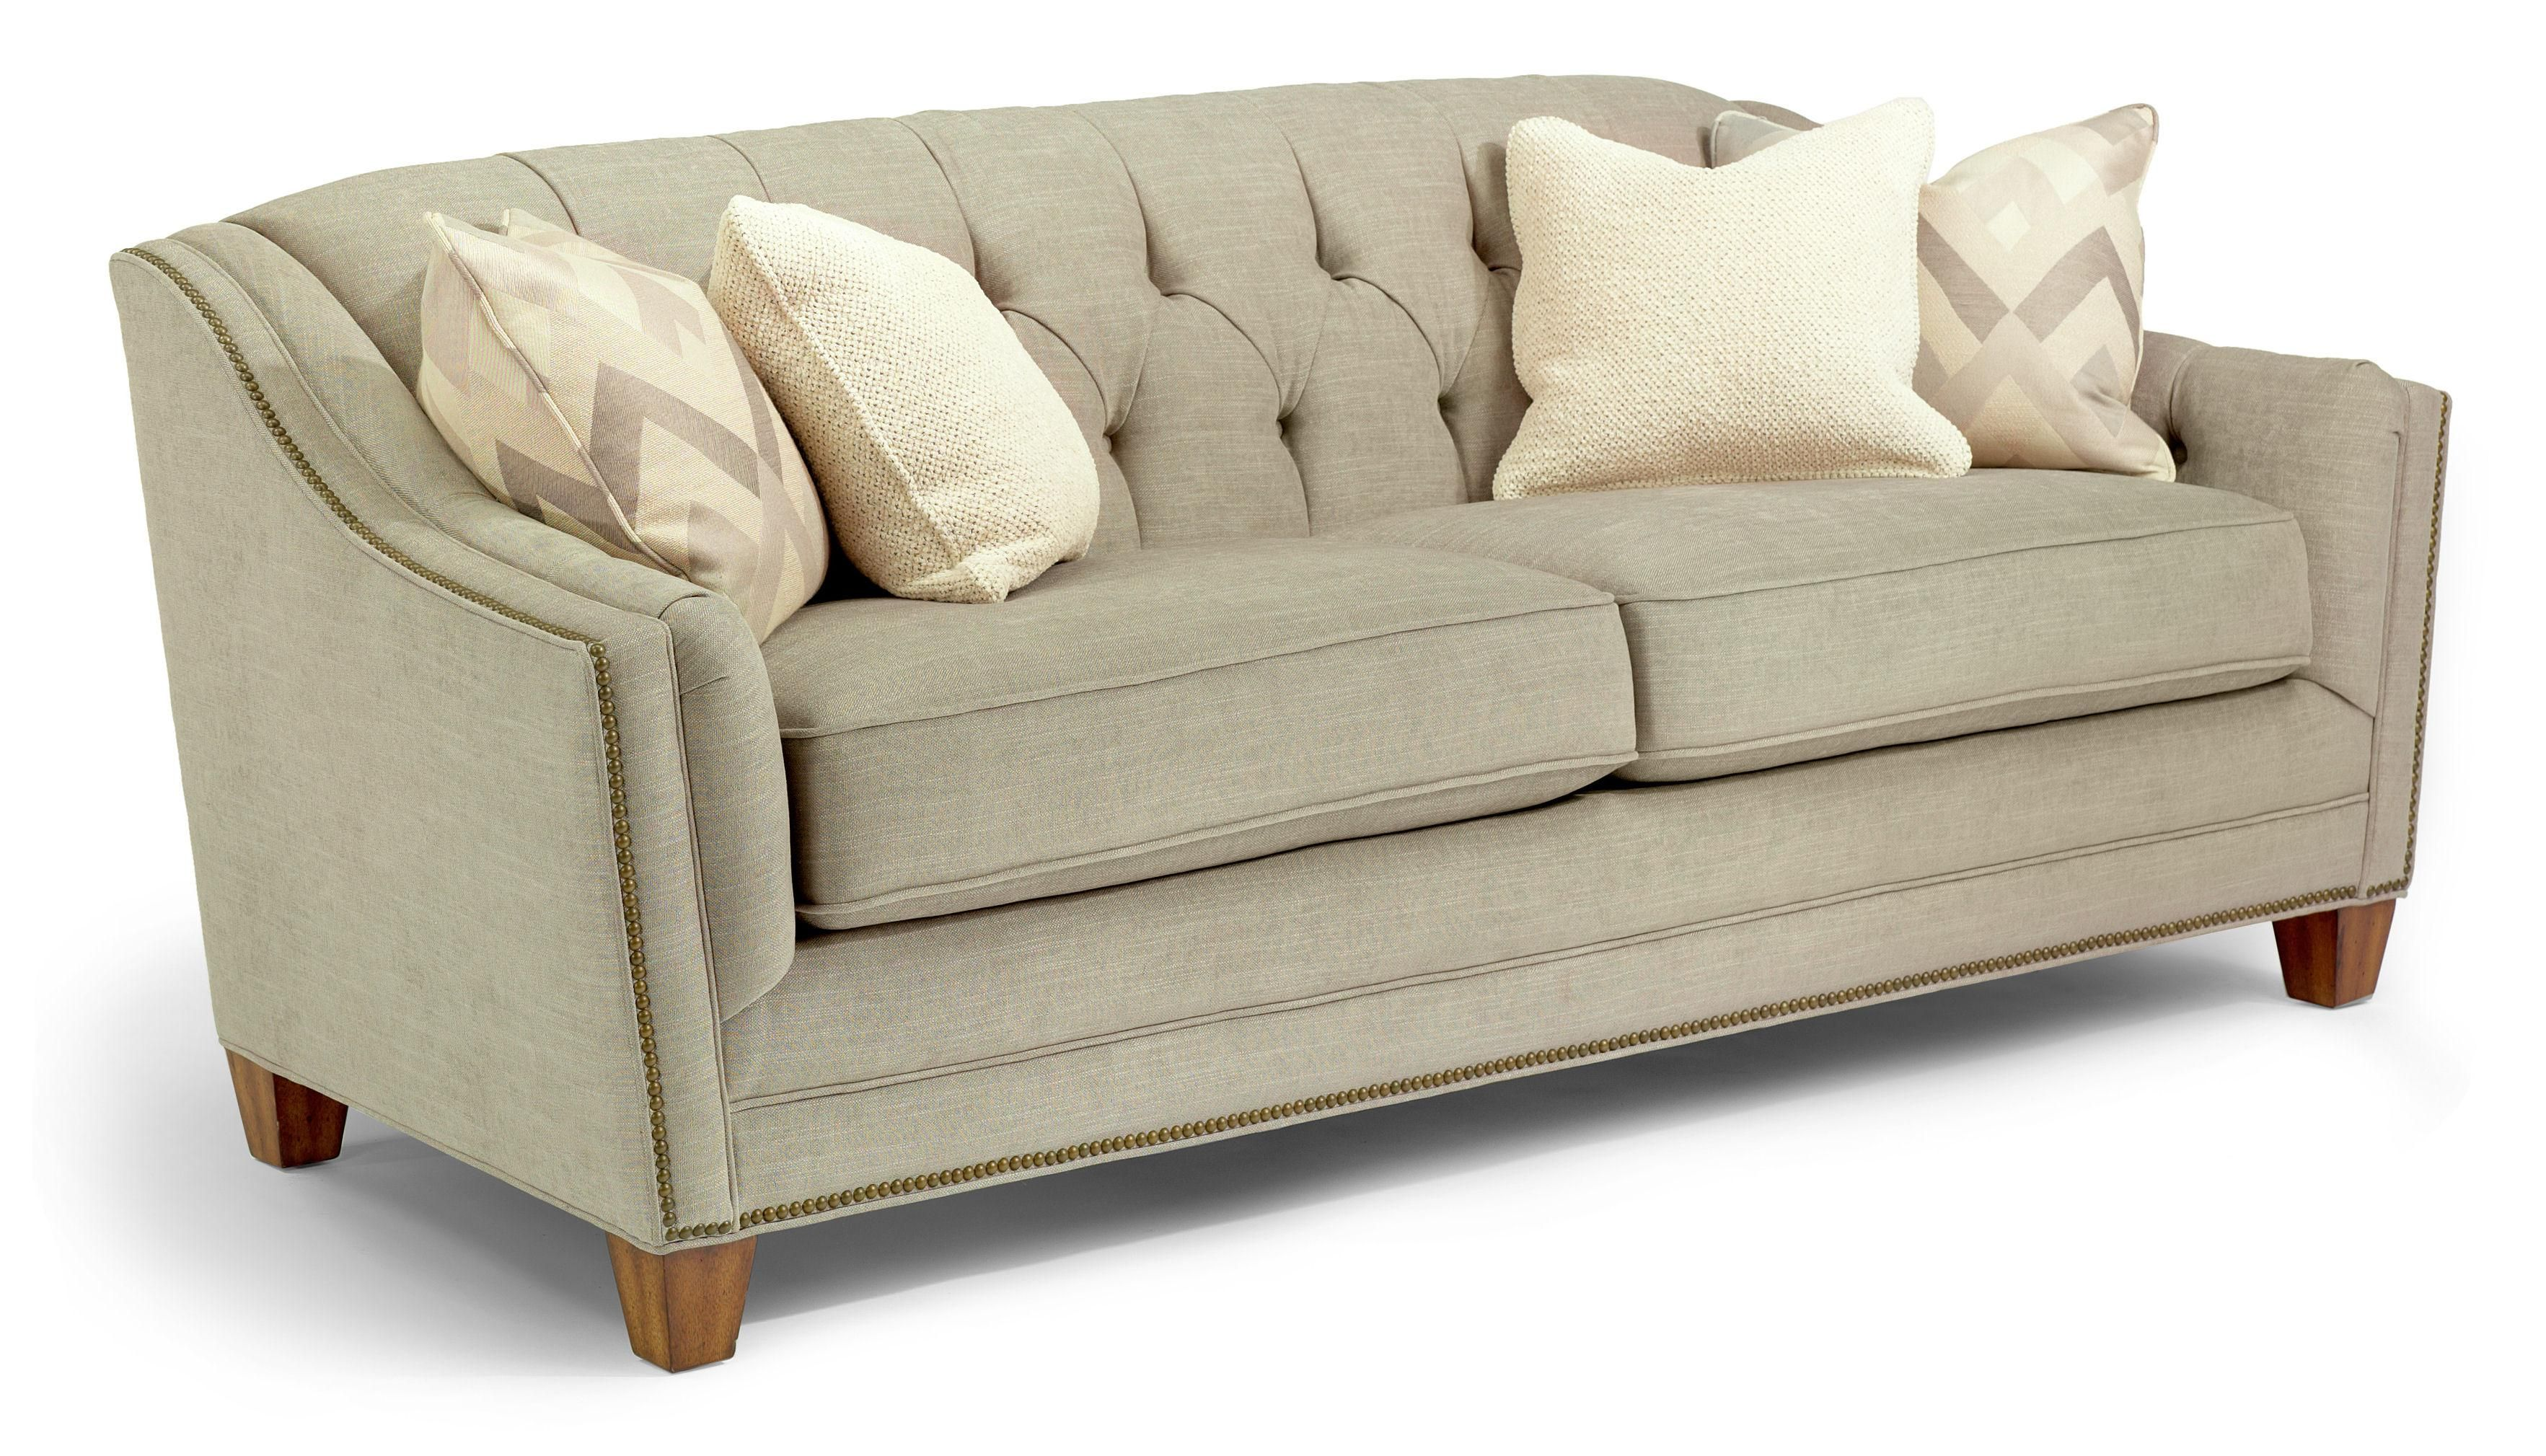 Dorea Sofa W Nails By Flexsteel This May Be The Best Yet Love